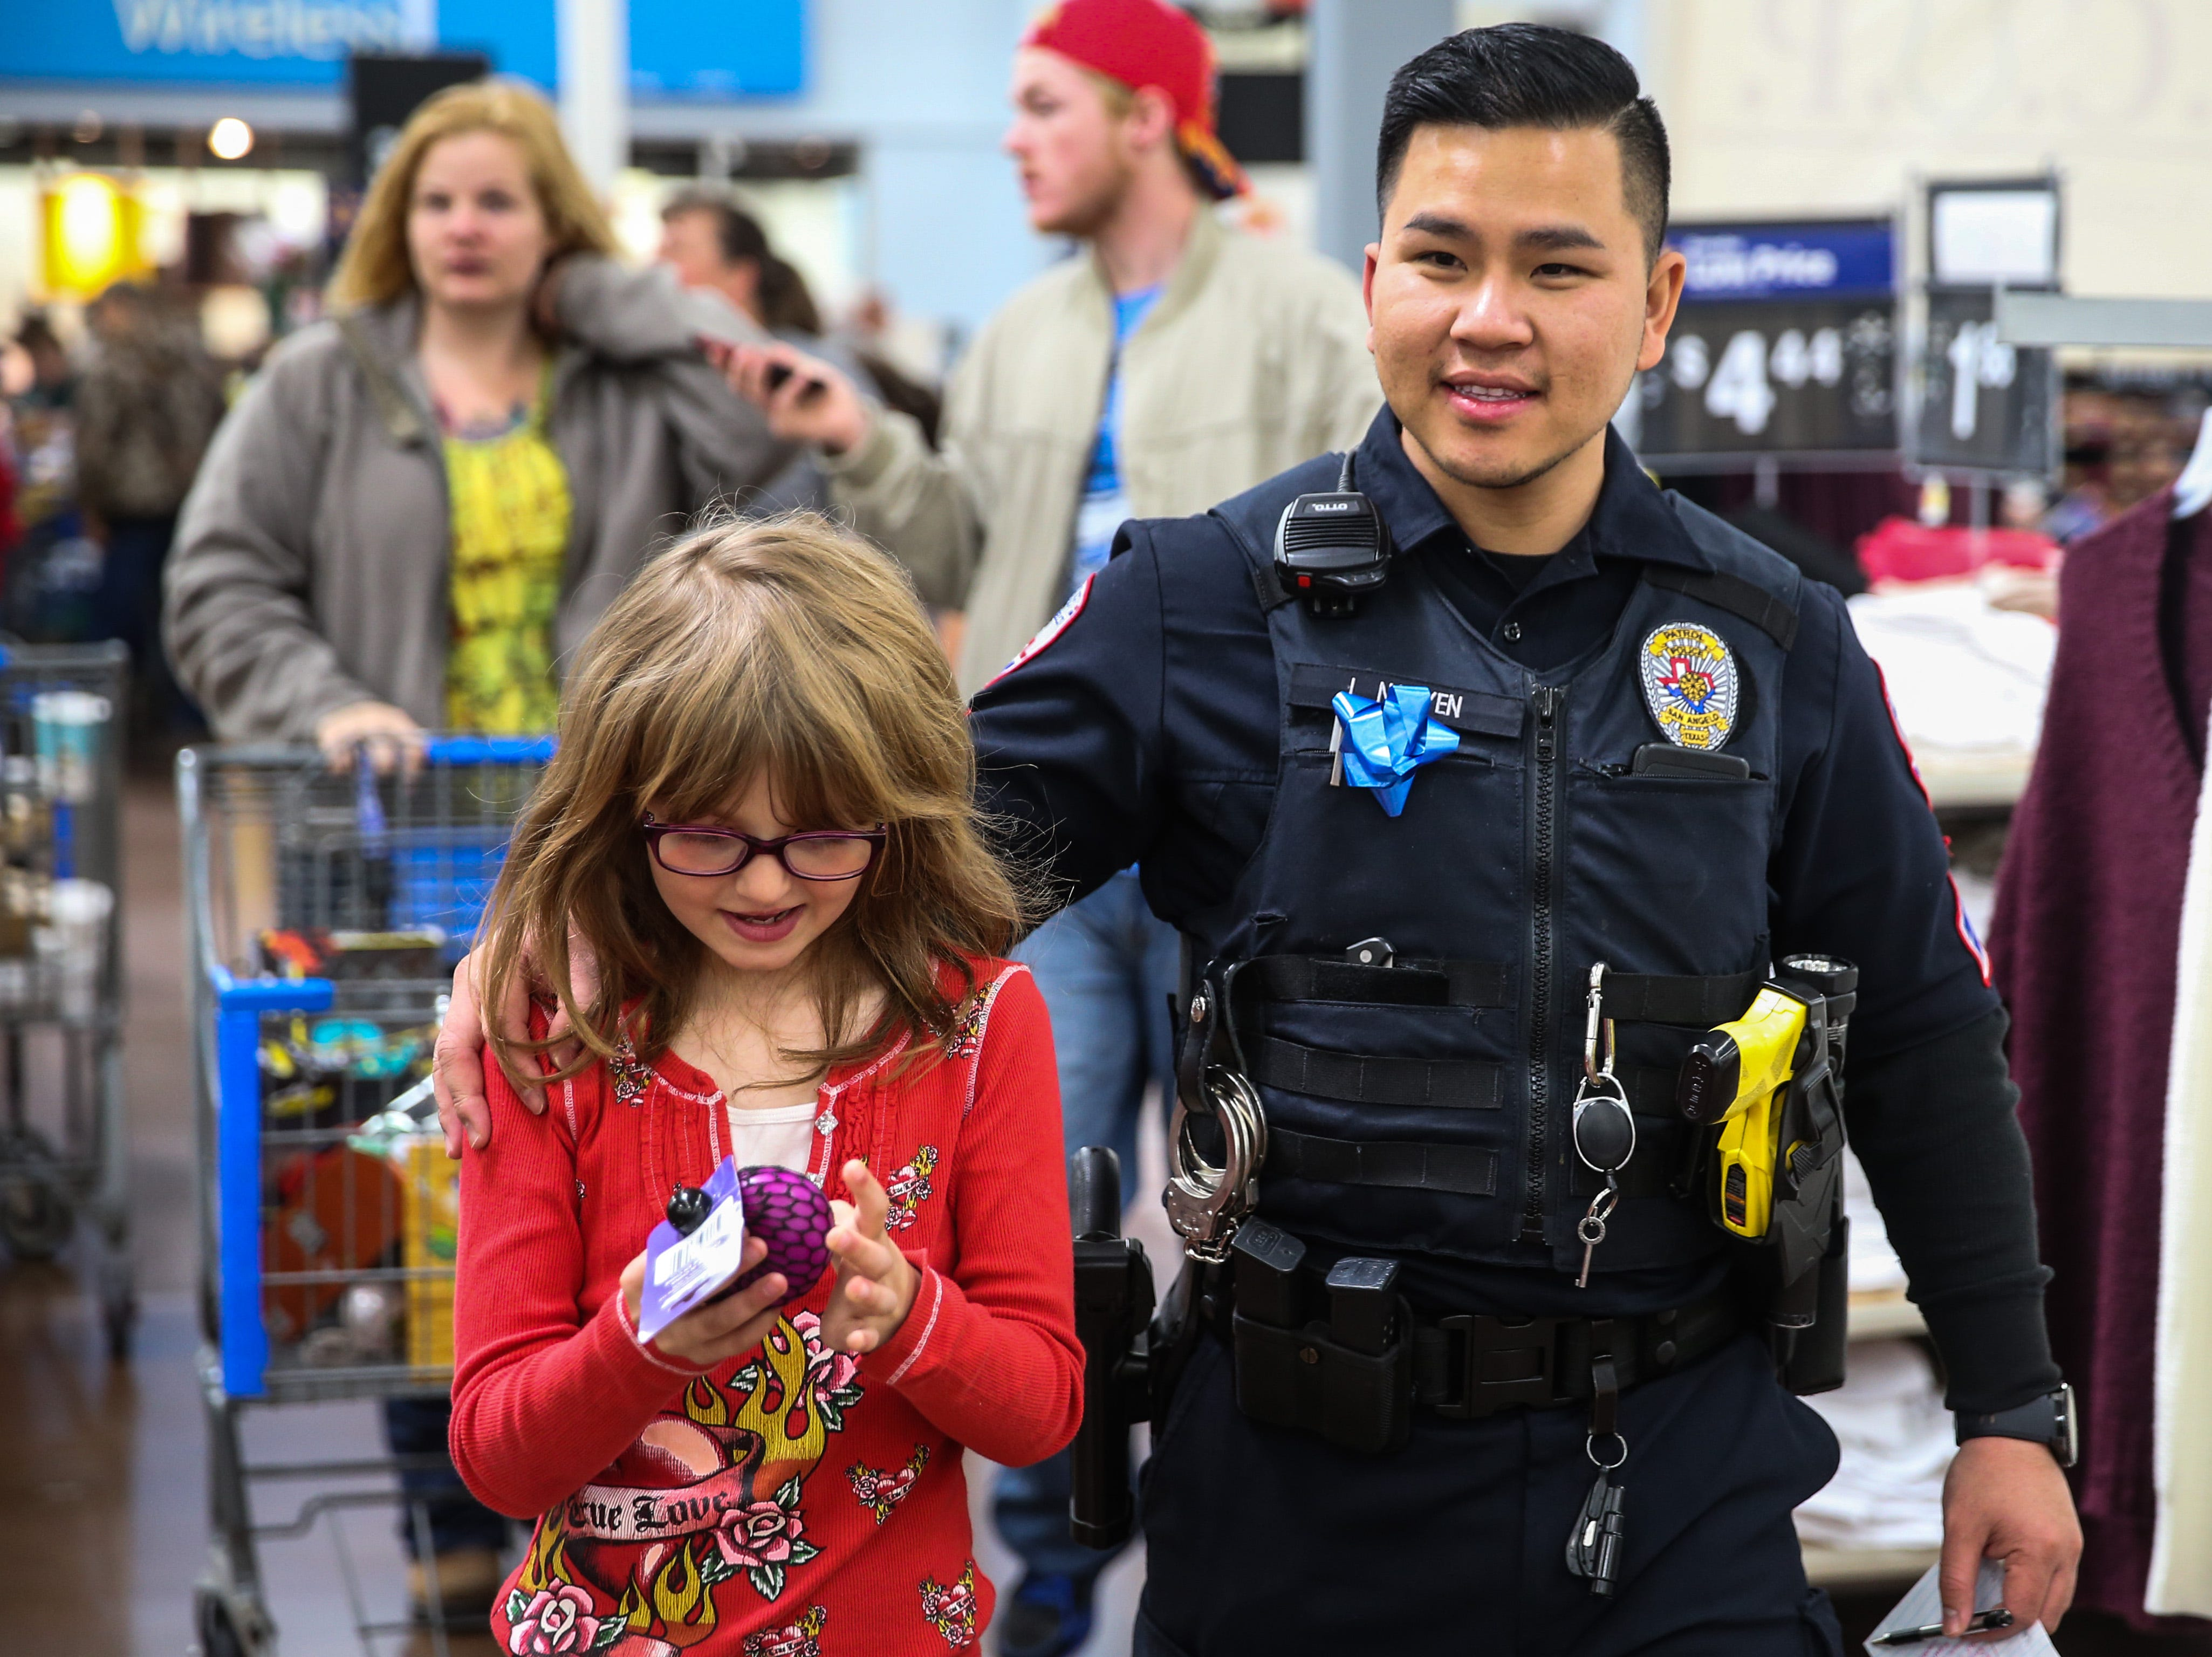 San Angelo Police officer Long Nguyen shops for gifts with Nicole Odell, 6, during Shop with a Cop event Saturday at Walmart.